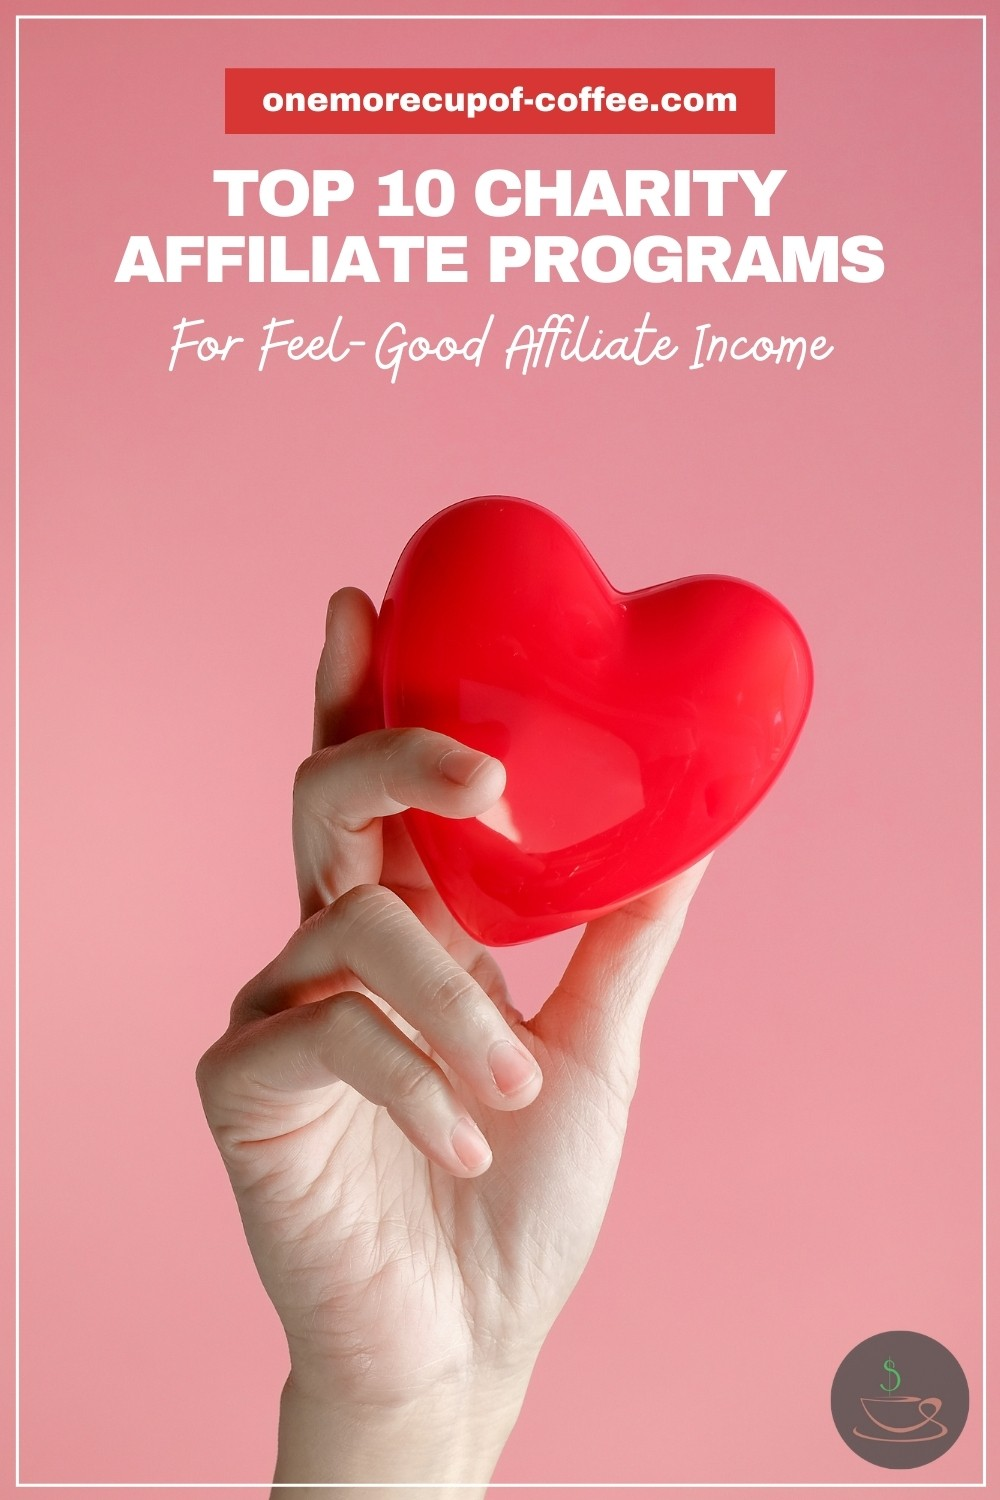 """closeup of a hand holding a red heart-shaped object, with text overlay """"Top 10 Charity Affiliate Programs For Feel-Good Affiliate Income"""""""